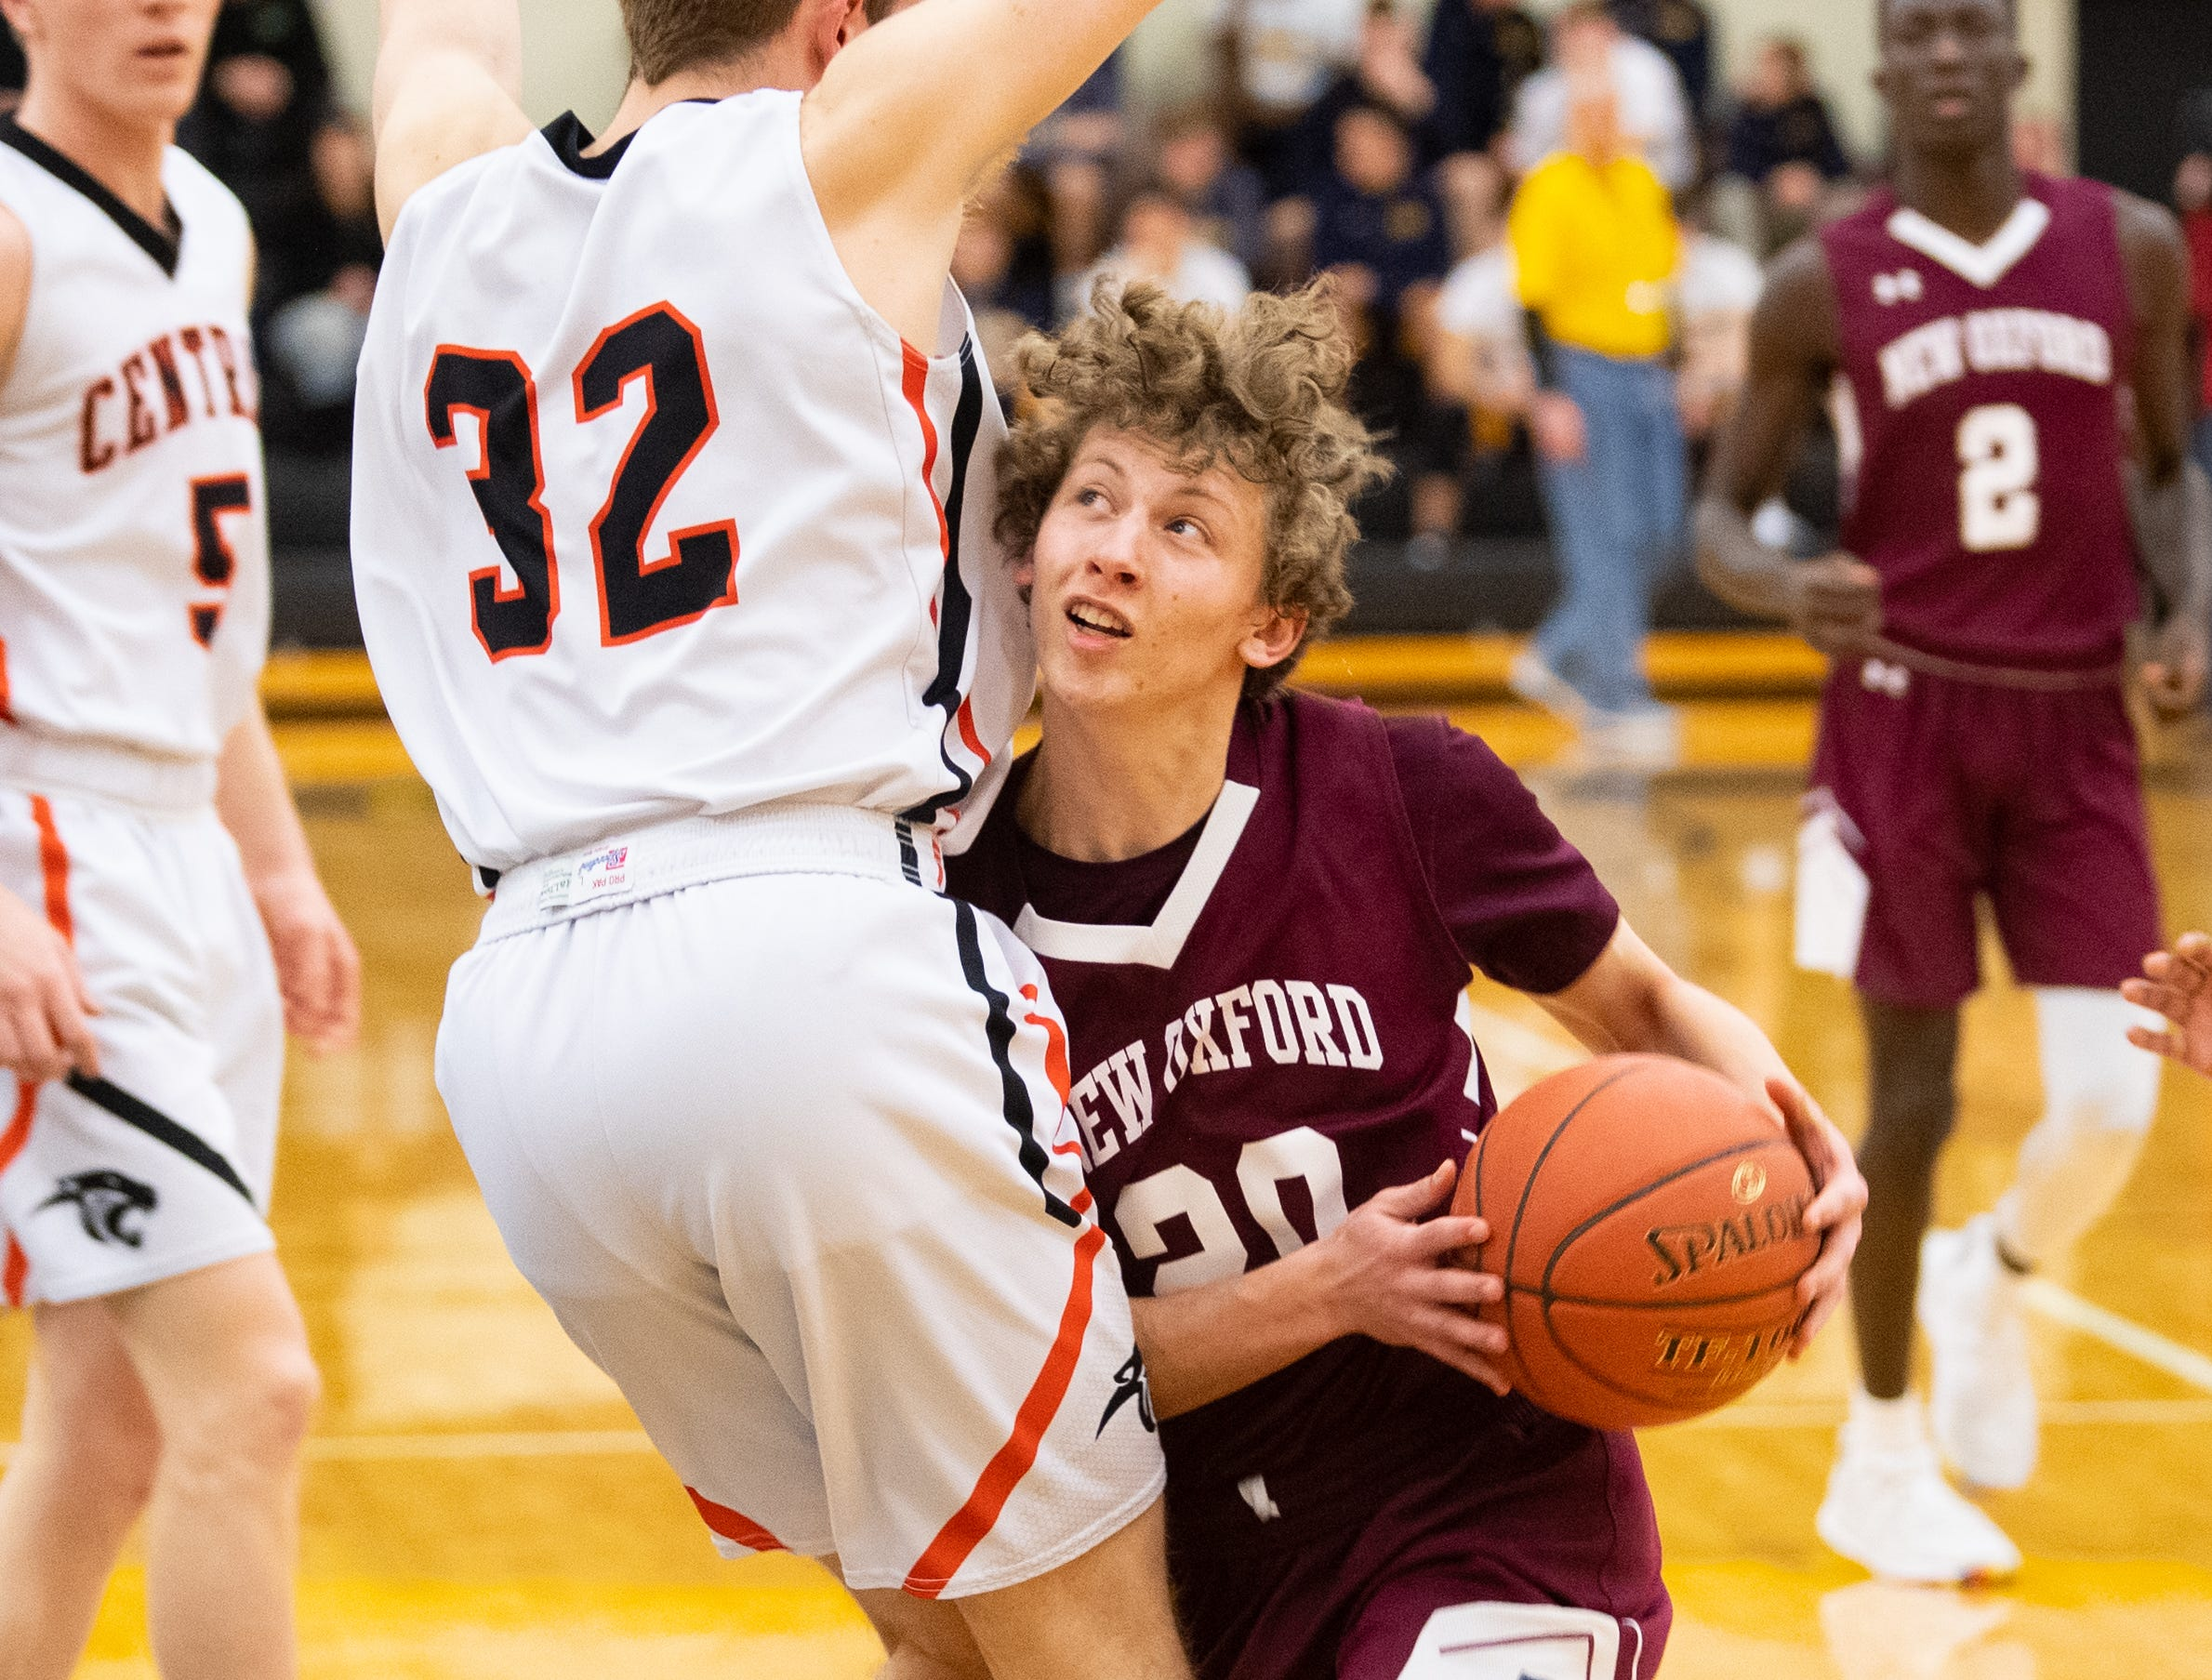 Jaren Rex (20) tries to draw the foul during the YAIAA boys' basketball semifinals between Central York and New Oxford, Wednesday, February 13, 2019 at Red Lion Area High School. The Colonials defeated the Panthers 43 to 41.